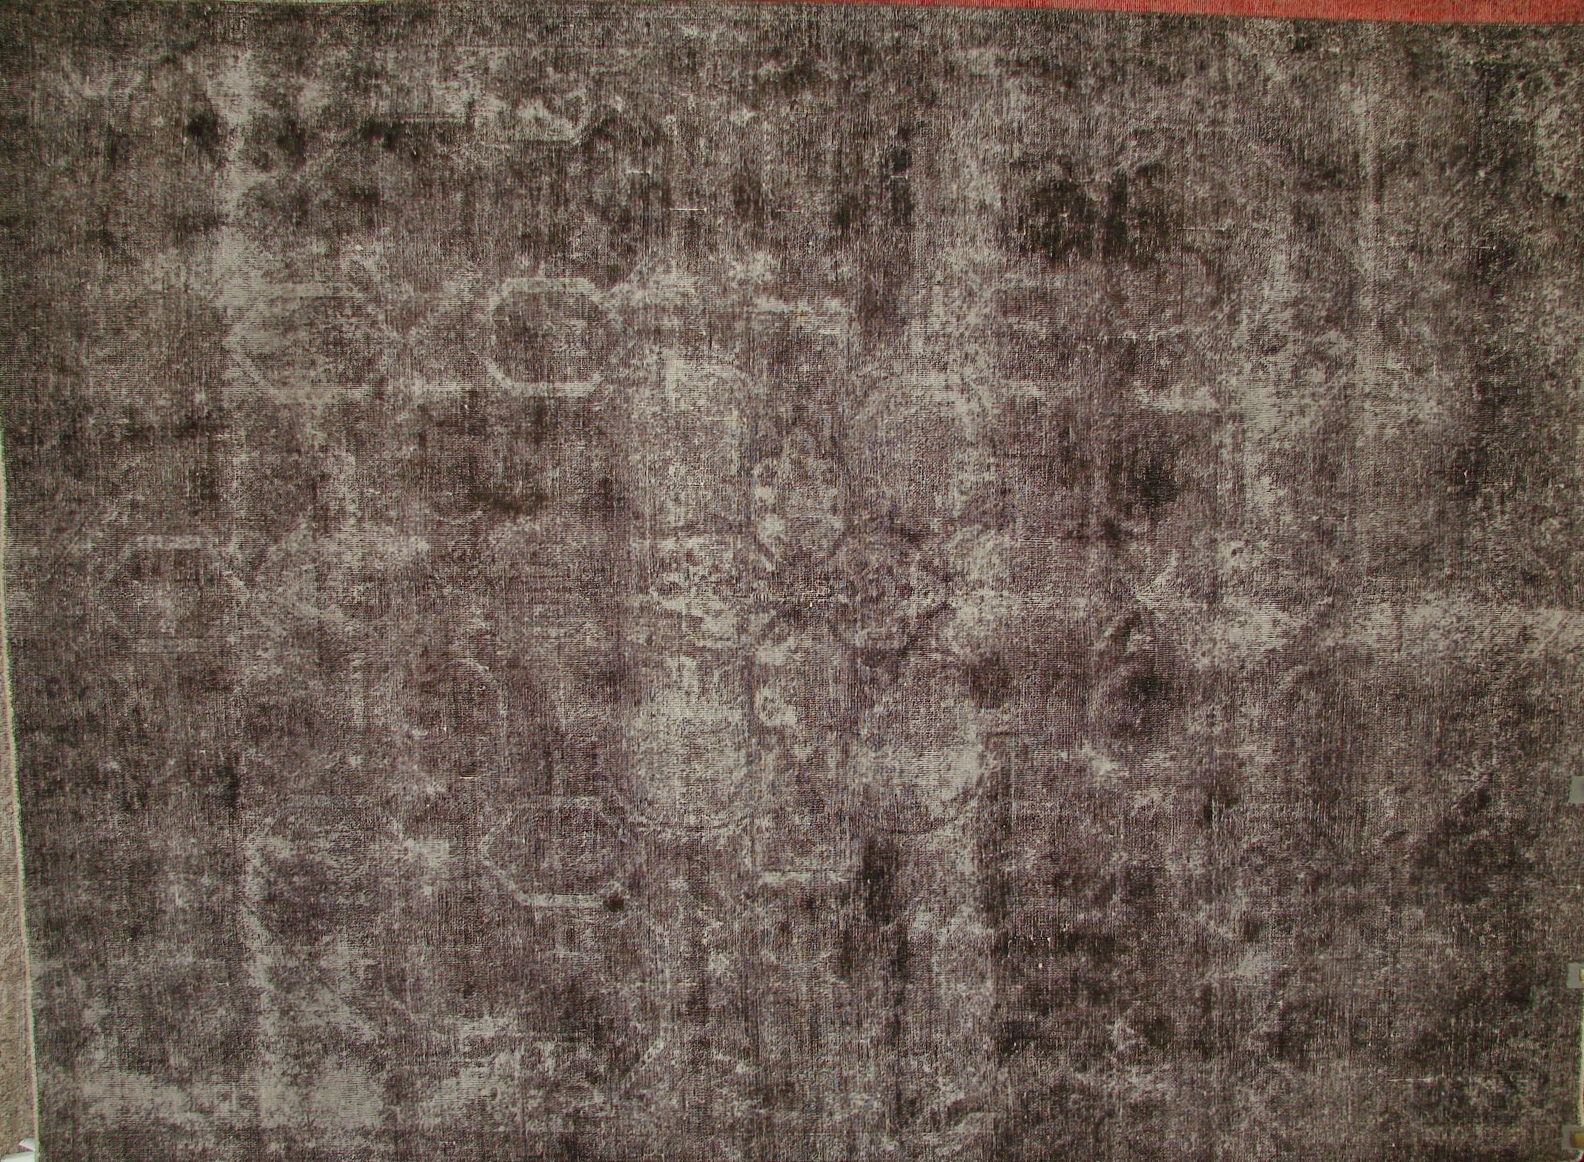 8x10 Vintage Hand Knotted Wool Area Rug - MR17291